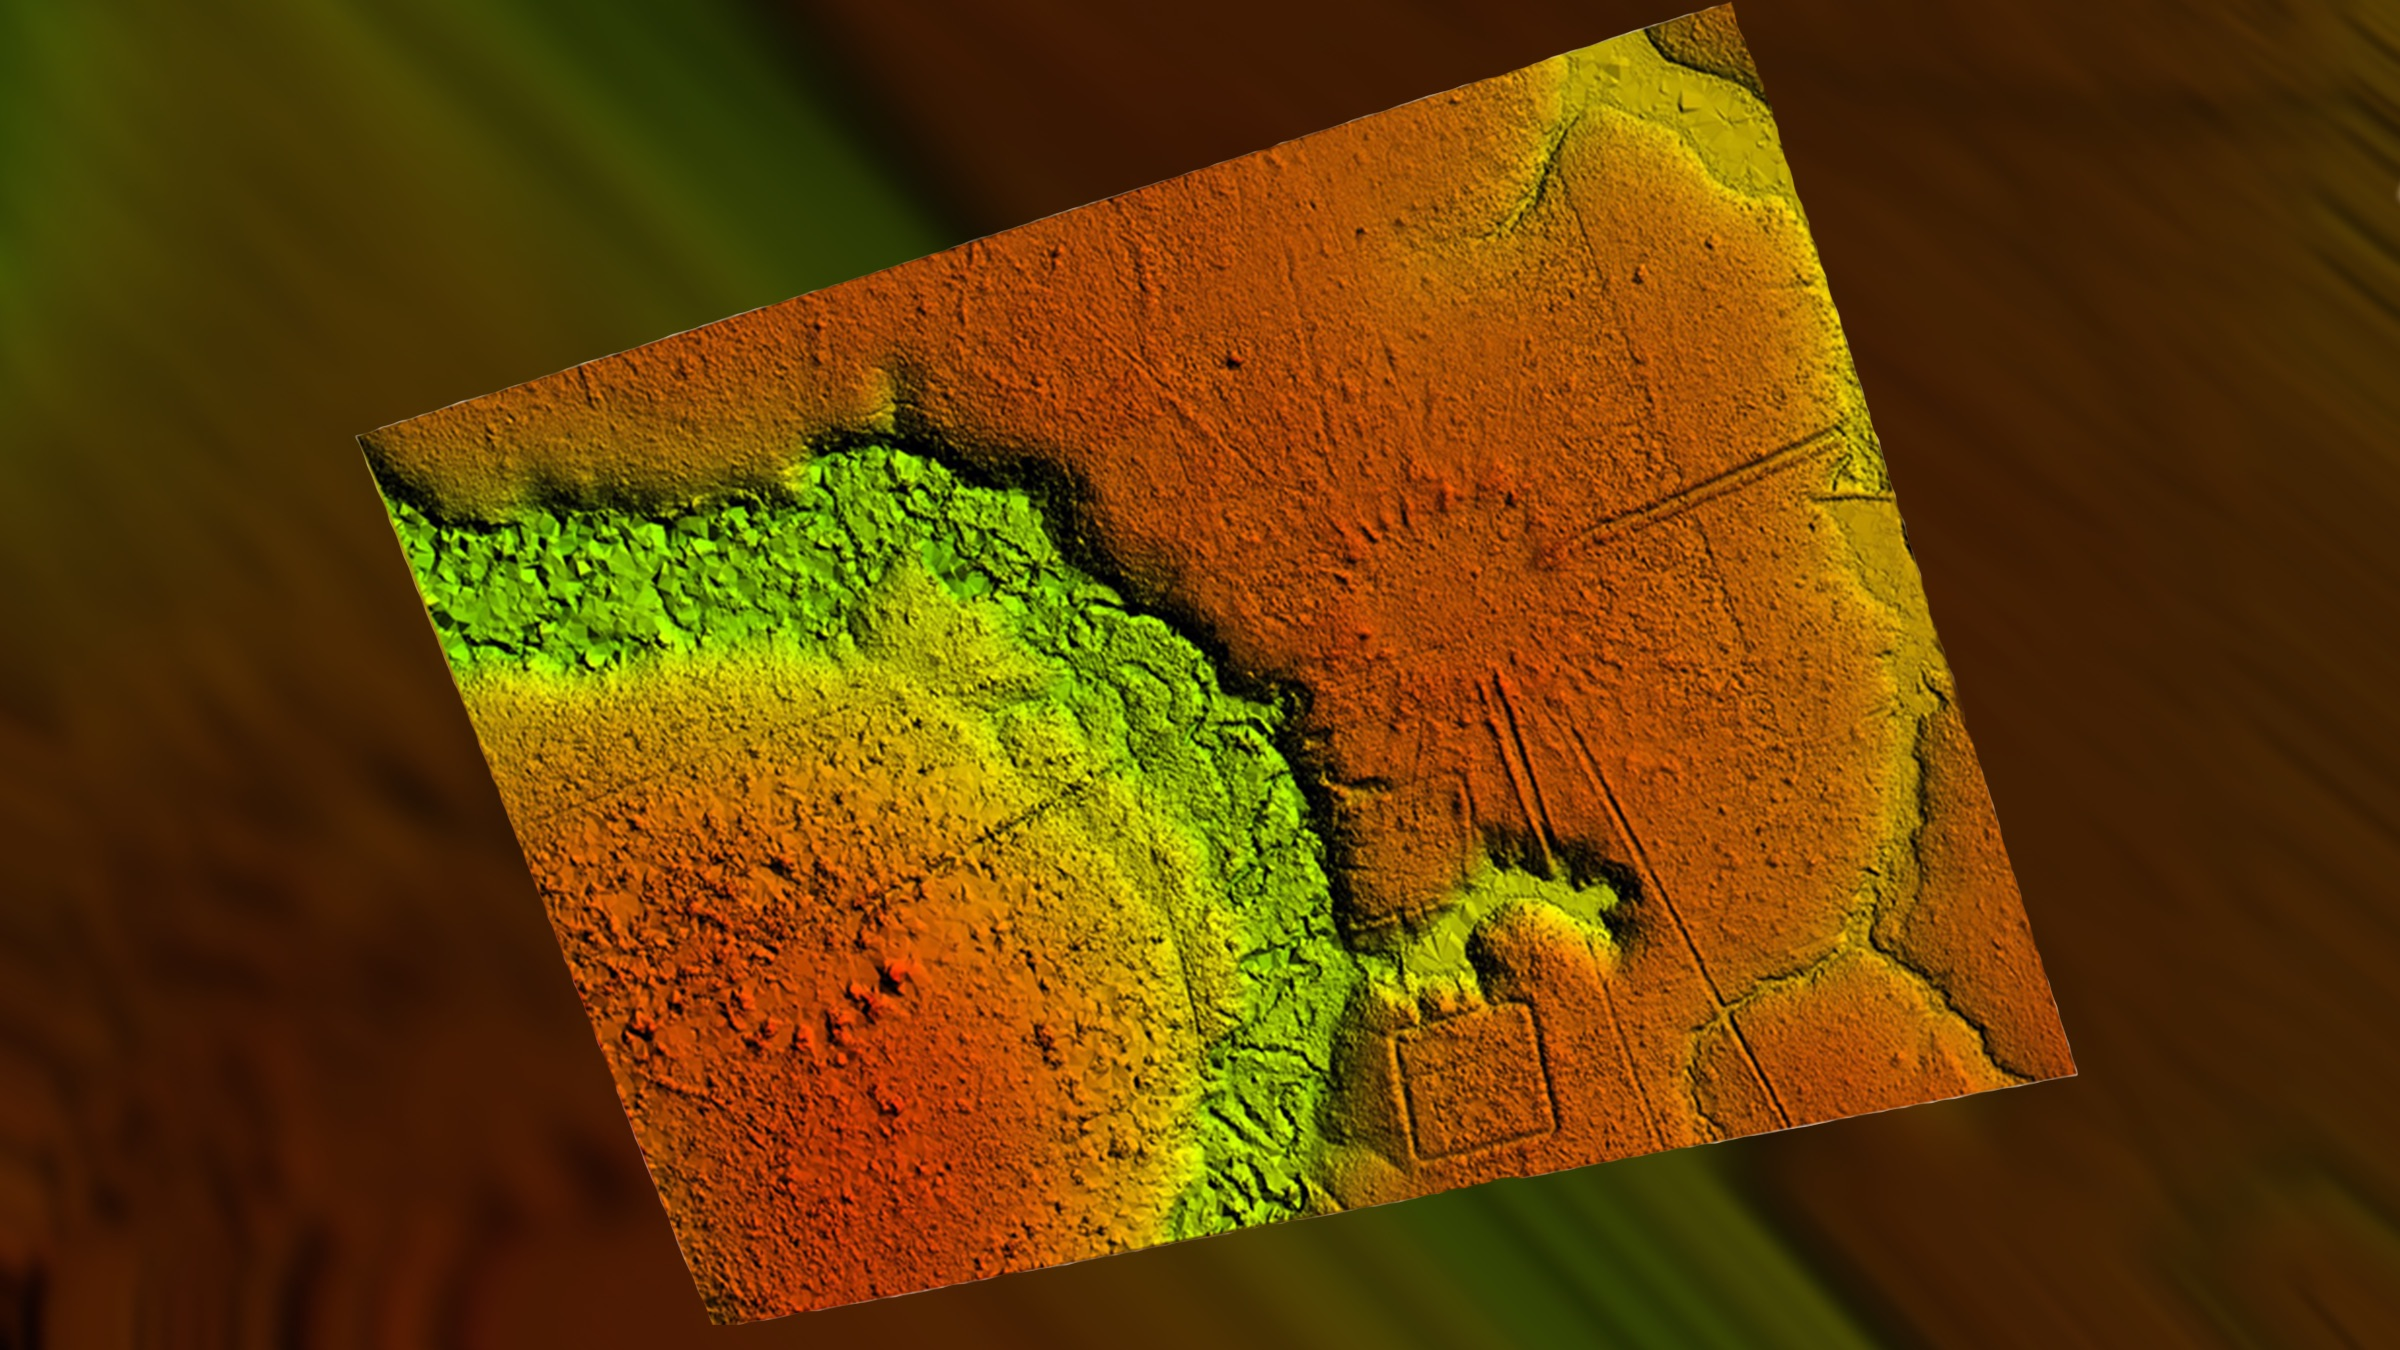 Lidar technology revealed more than 35 long-abandoned villages that look like the rays of a sun.